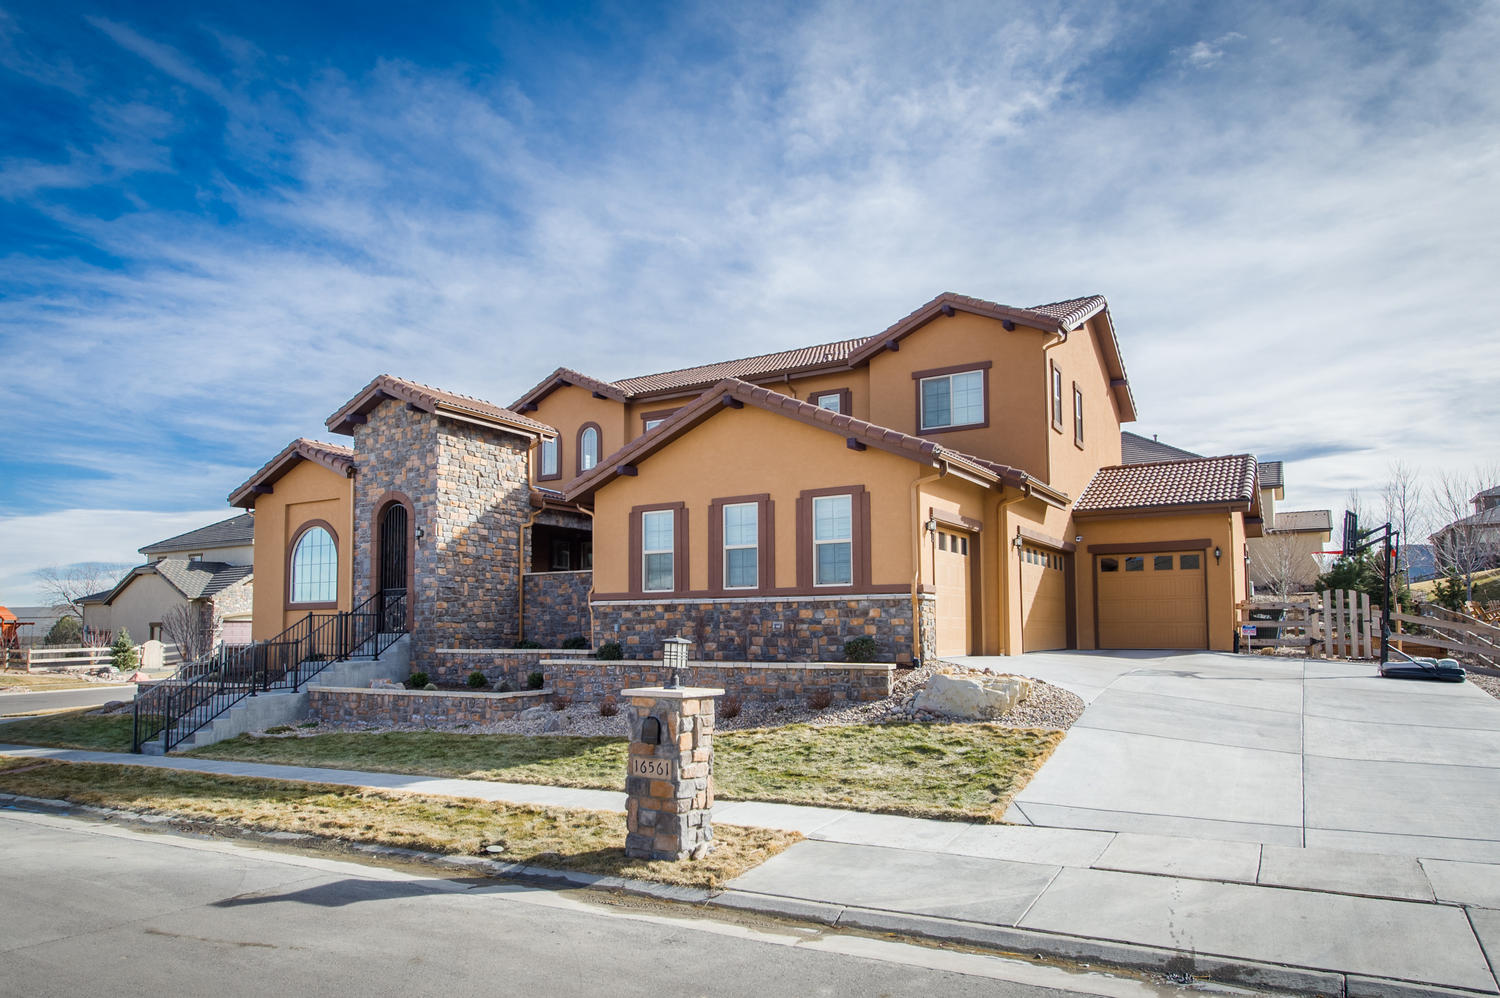 Single Family Home for Sale at Gorgeous Mediterranean style home at the base of North Table Mountain 16561 W 48th Ln Golden, Colorado, 80403 United States